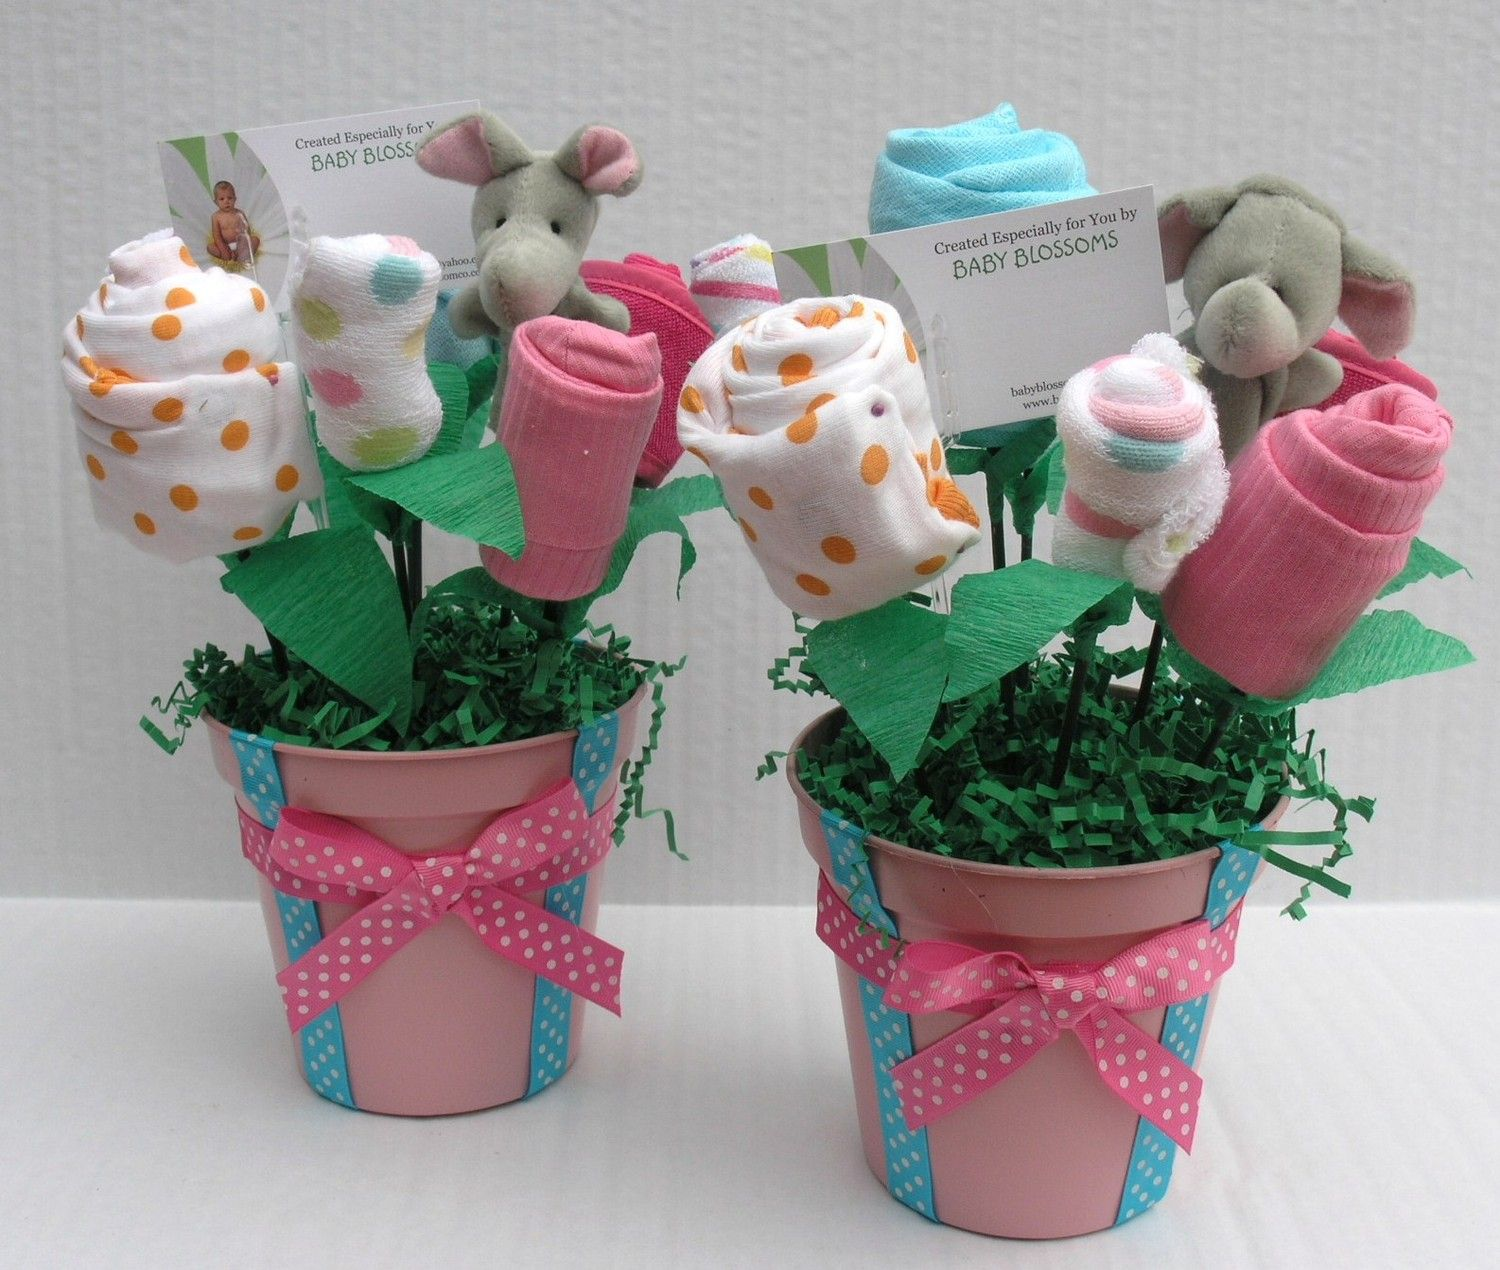 Cute Baby Shower Decorations Baby Girl Shower Decorations Baby Shower Centerpiece Set Unique